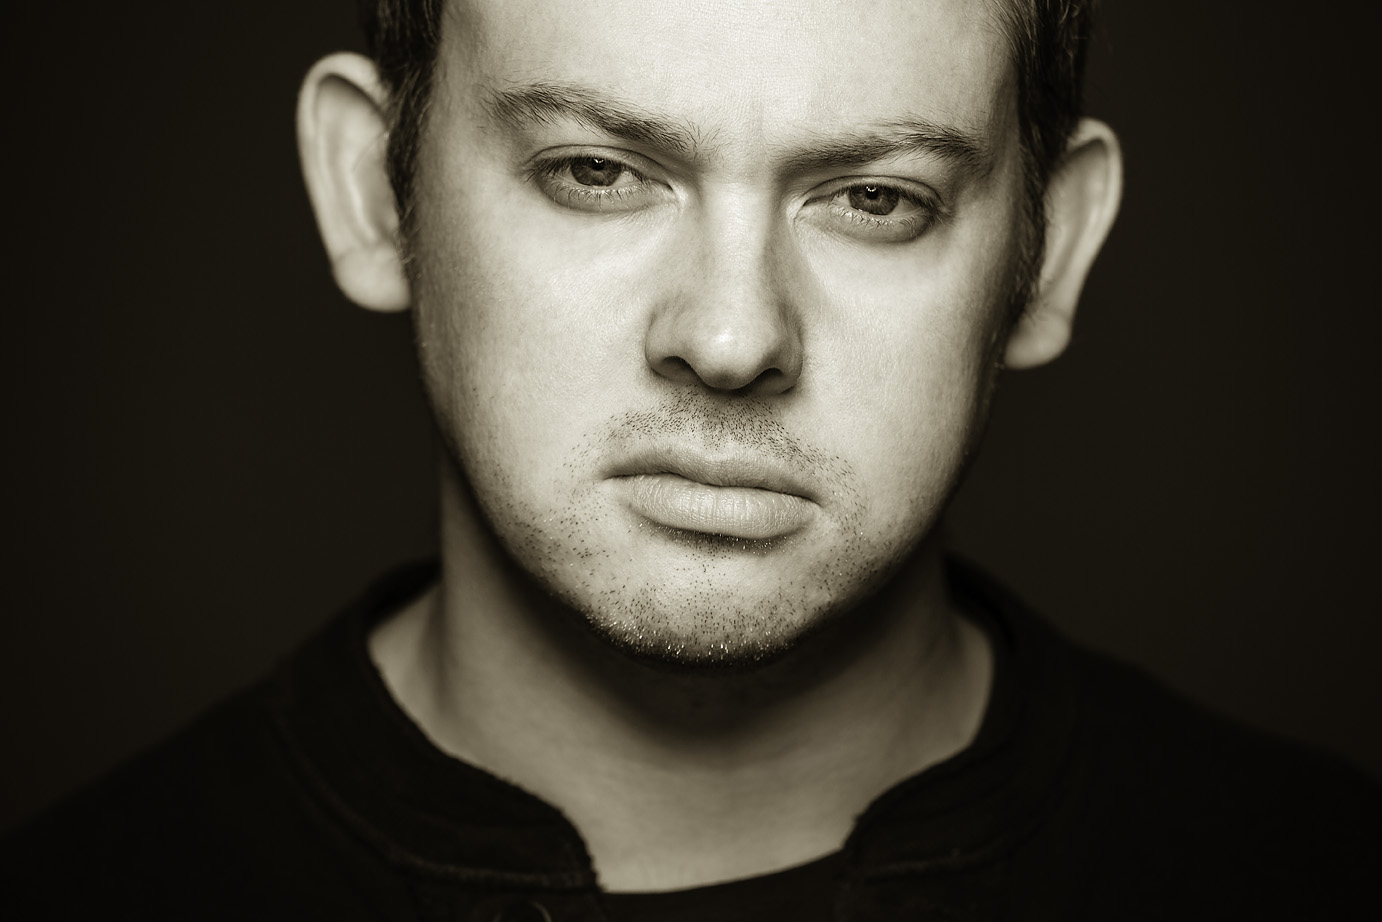 Photo: studio portraiture for award winning writer's PR. Photo-shoot in Hackney, East London